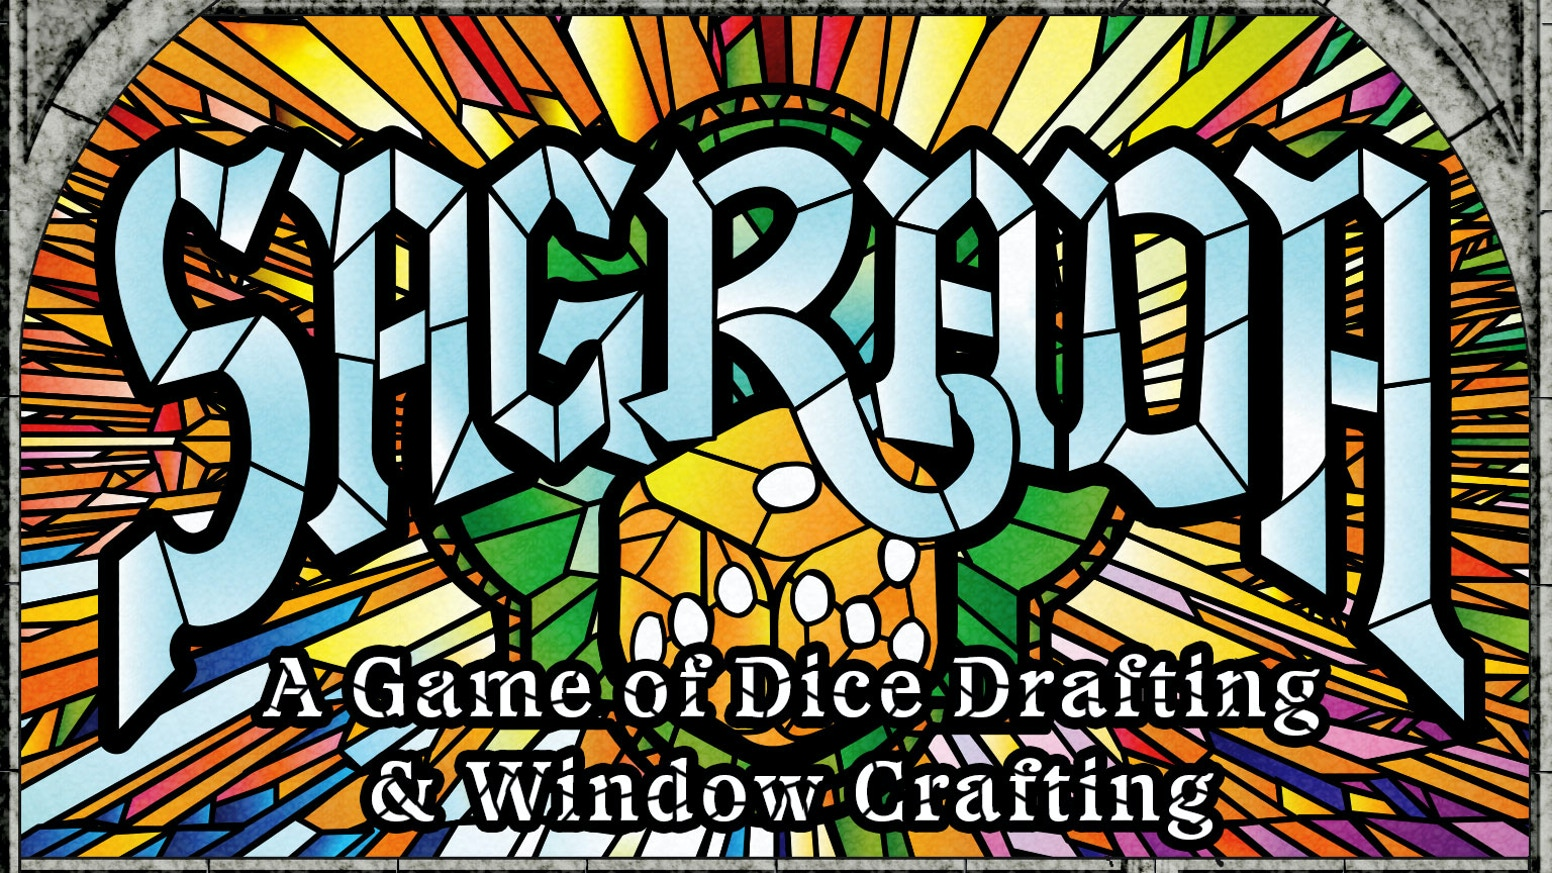 Draft dice & use tools-of-the-trade to carefully construct your stained glass window masterpiece. 1 to 4 players, 30-45 minutes